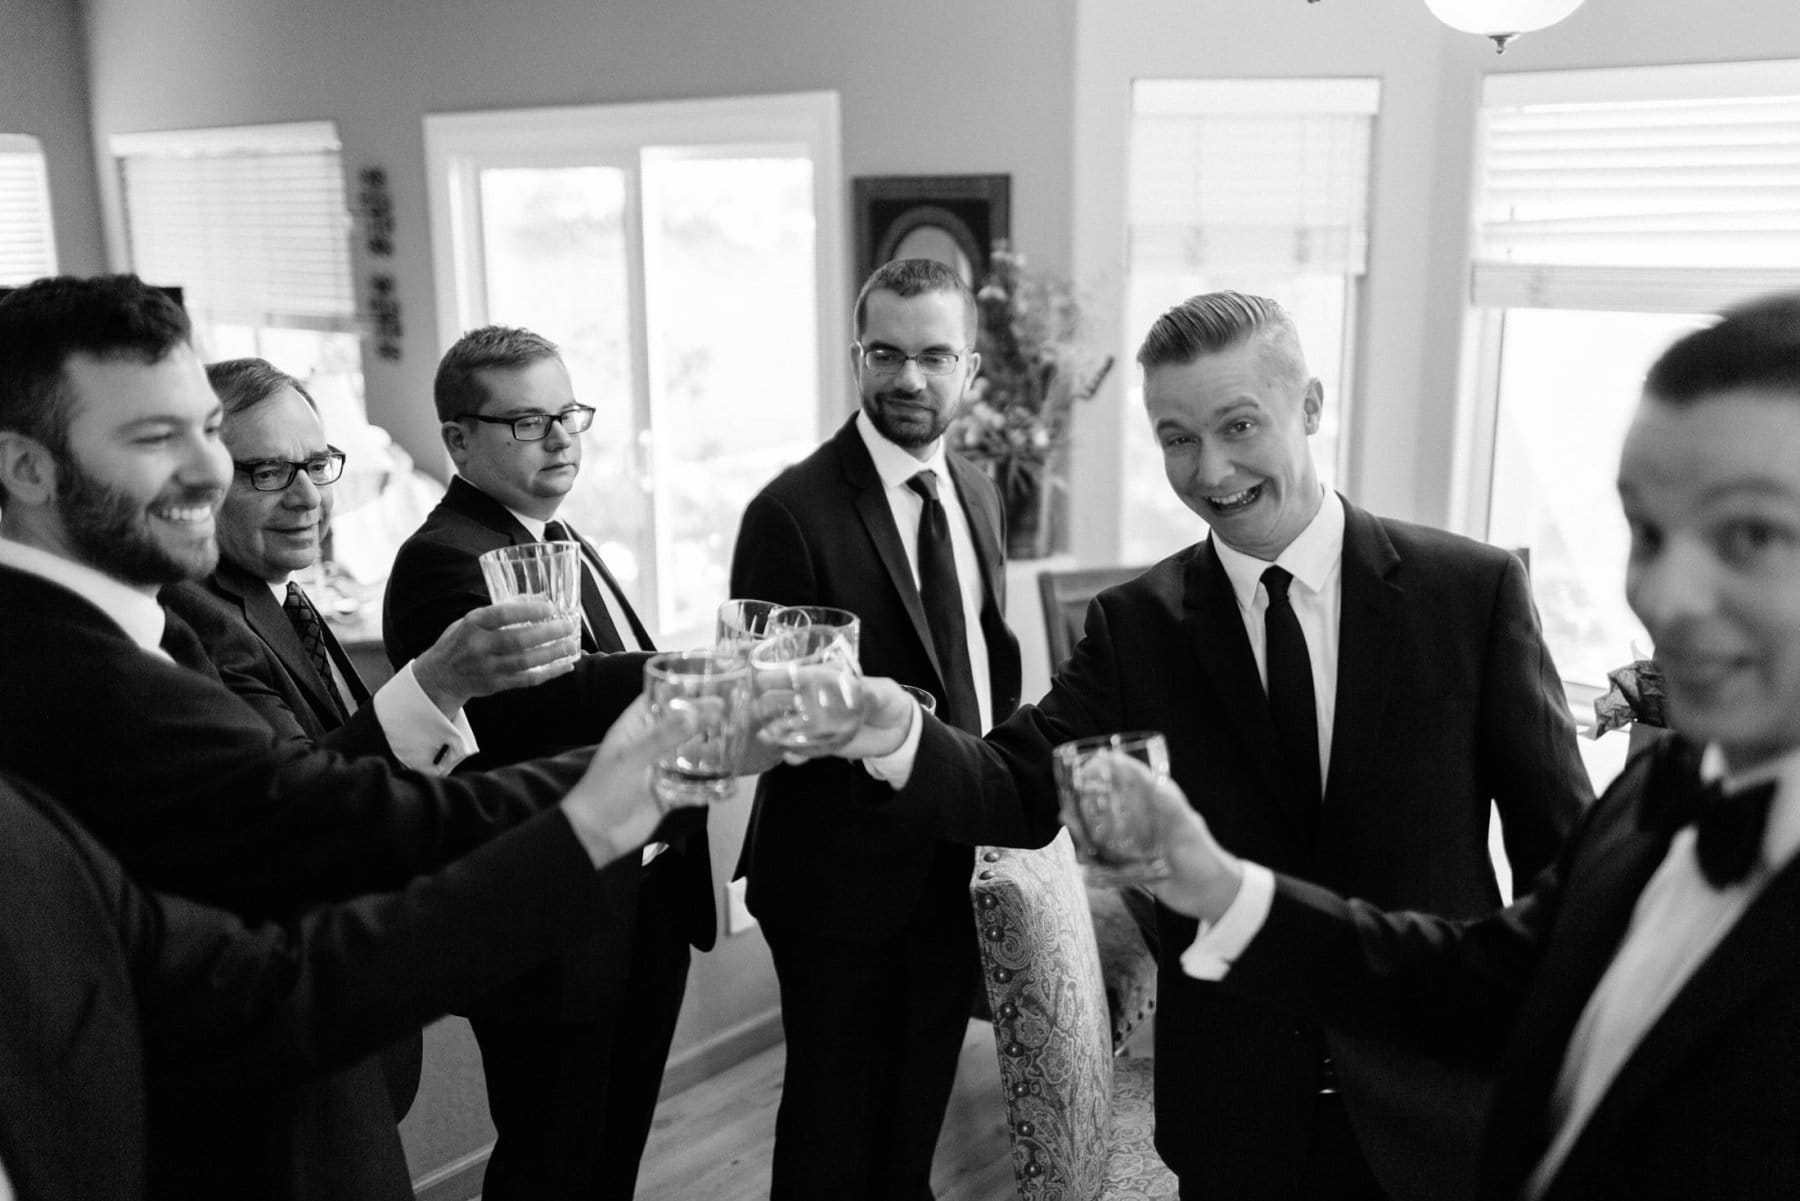 goofy groomsmen pre-wedding drink Arizona wedding photographer